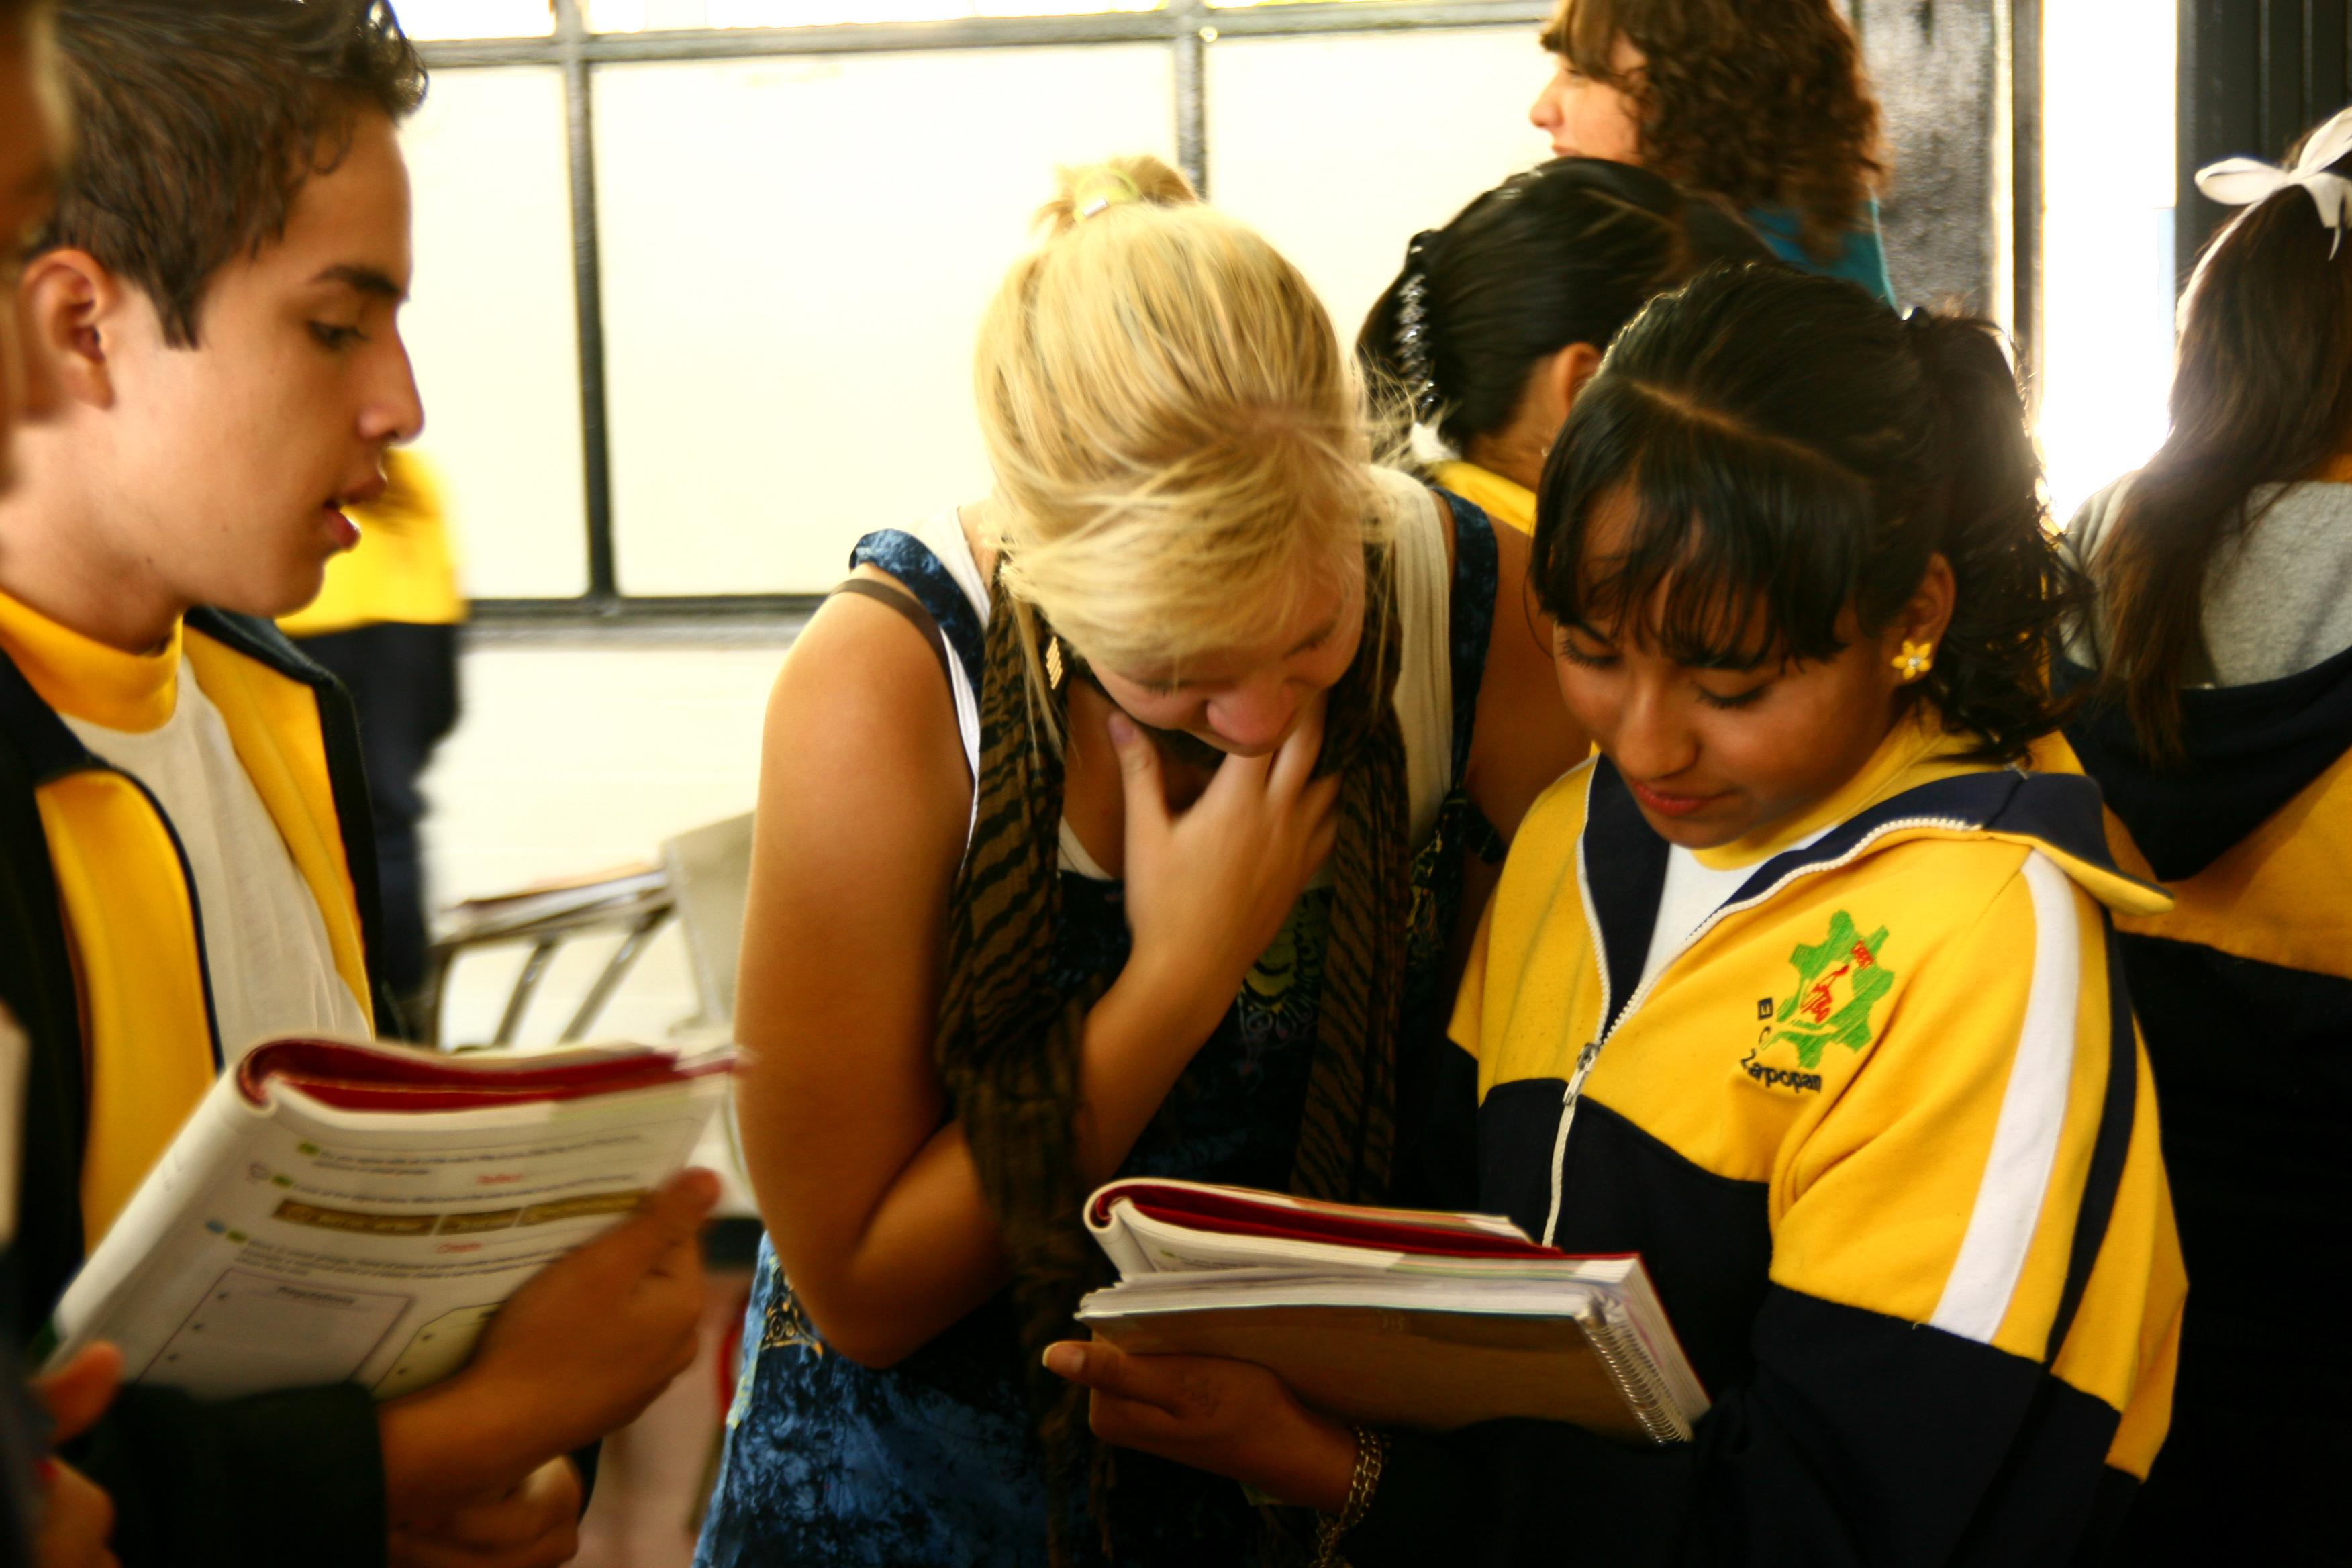 A student studying Spanish in Mexico with Projects Abroad volunteers in a local school with young children.